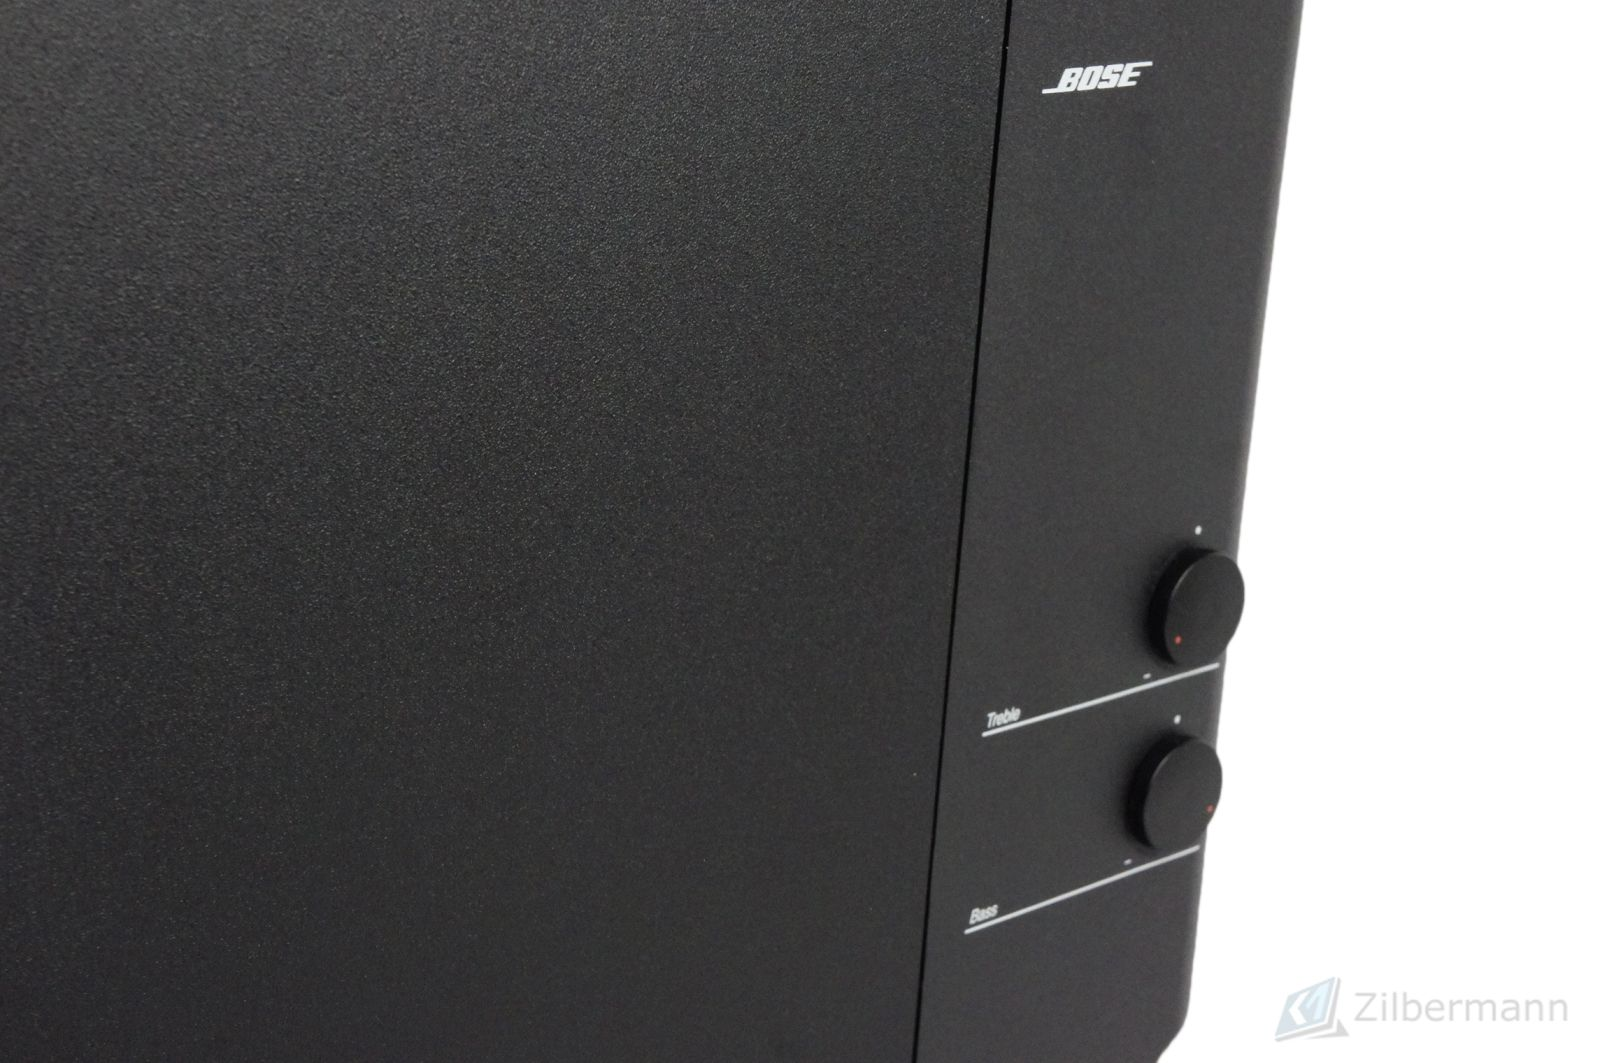 Bose_Powered_Acoustimass_8_Series_II_5.1_Subwoofer_Aktiv_05